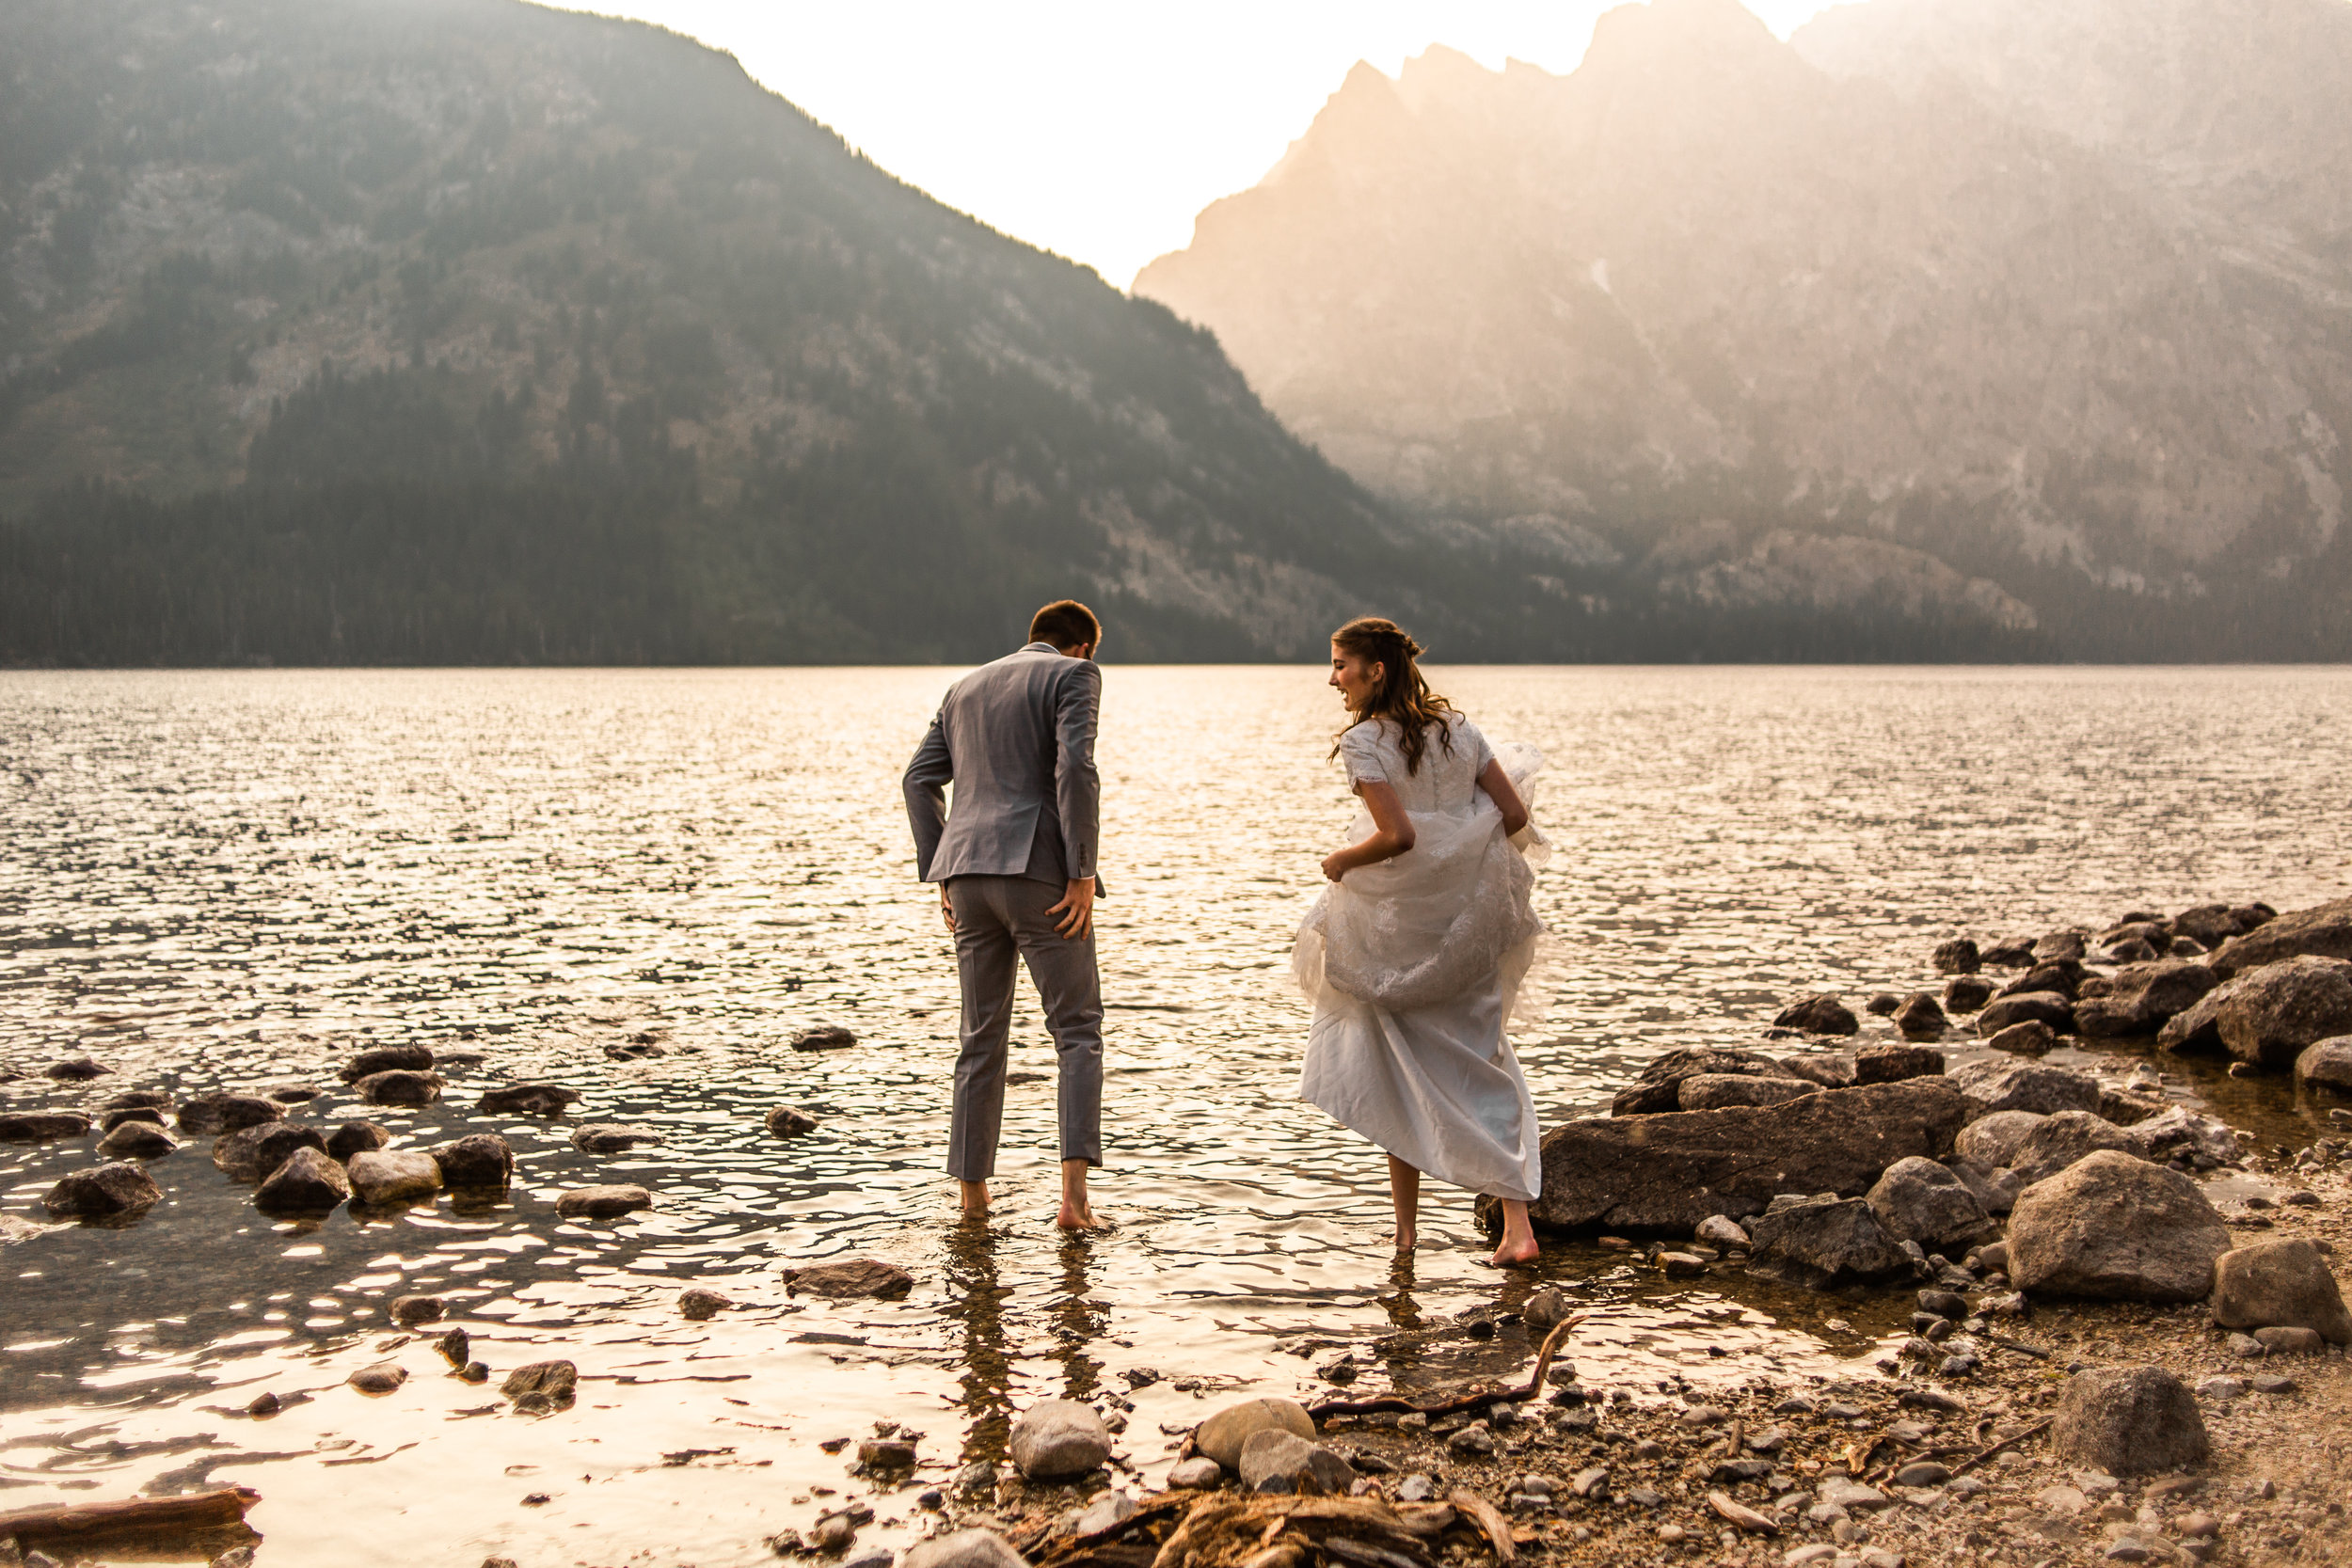 Grand-Teton-National-Park-Bridal-Session18.jpg